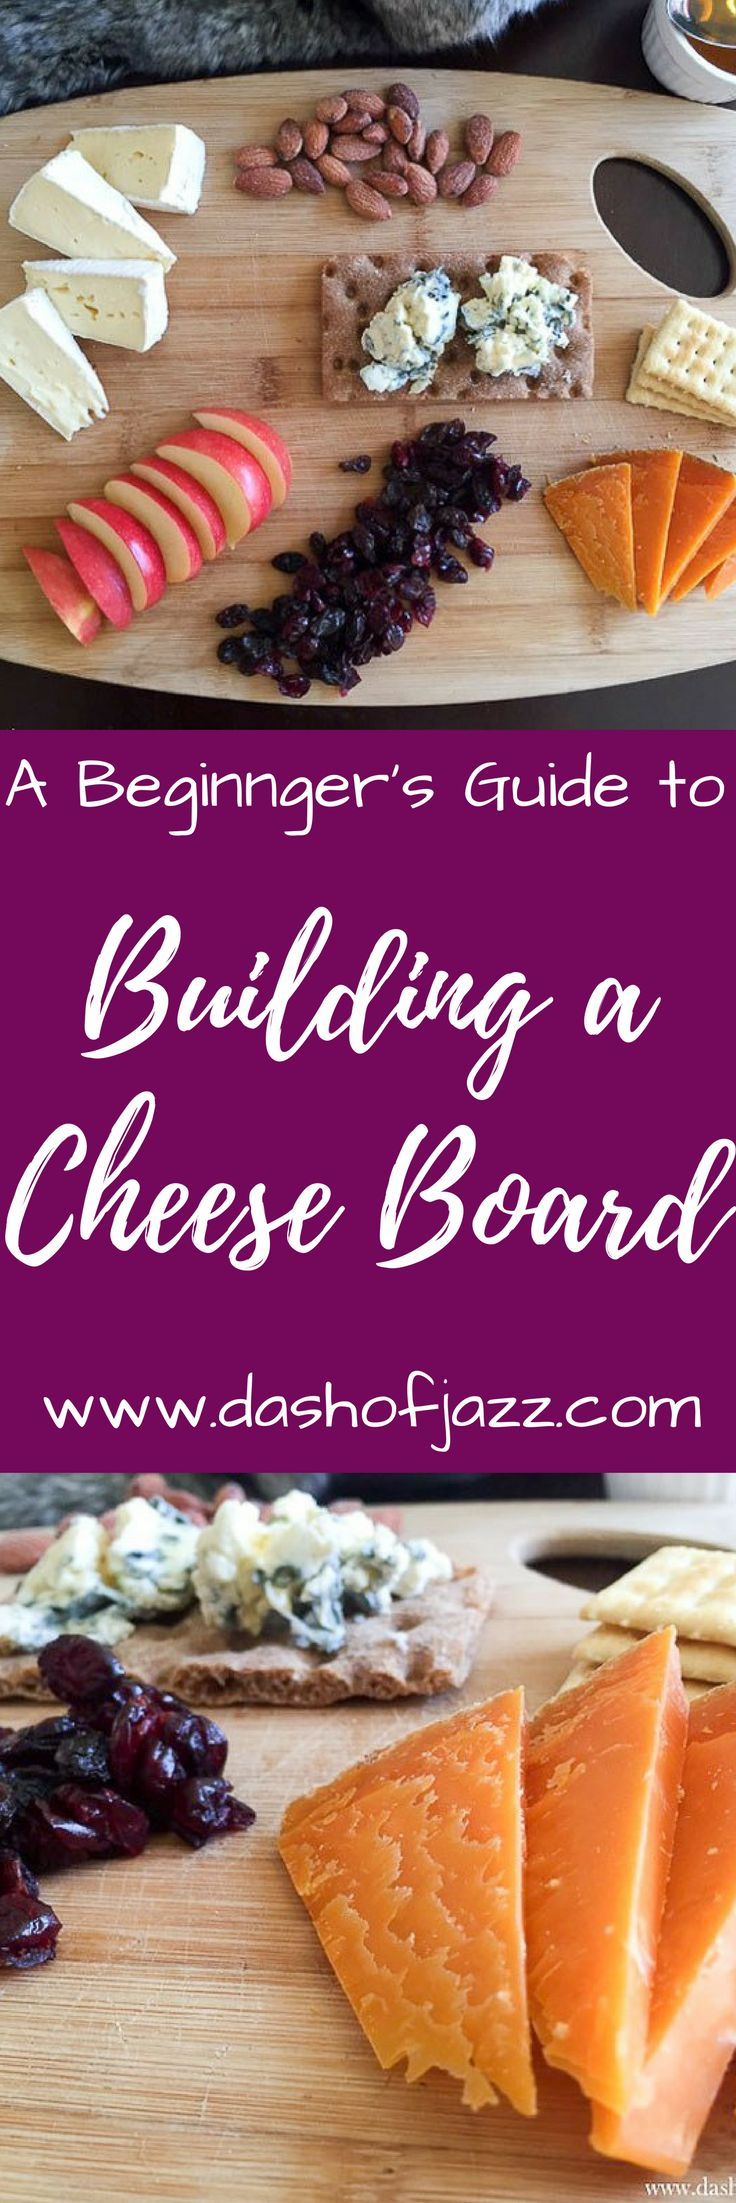 A few lessons from the French on how to create an easy cheese board whether you're making a snack or throwing a party, start with a beginner's cheese board by Dash of Jazz via @dashofjazzblog